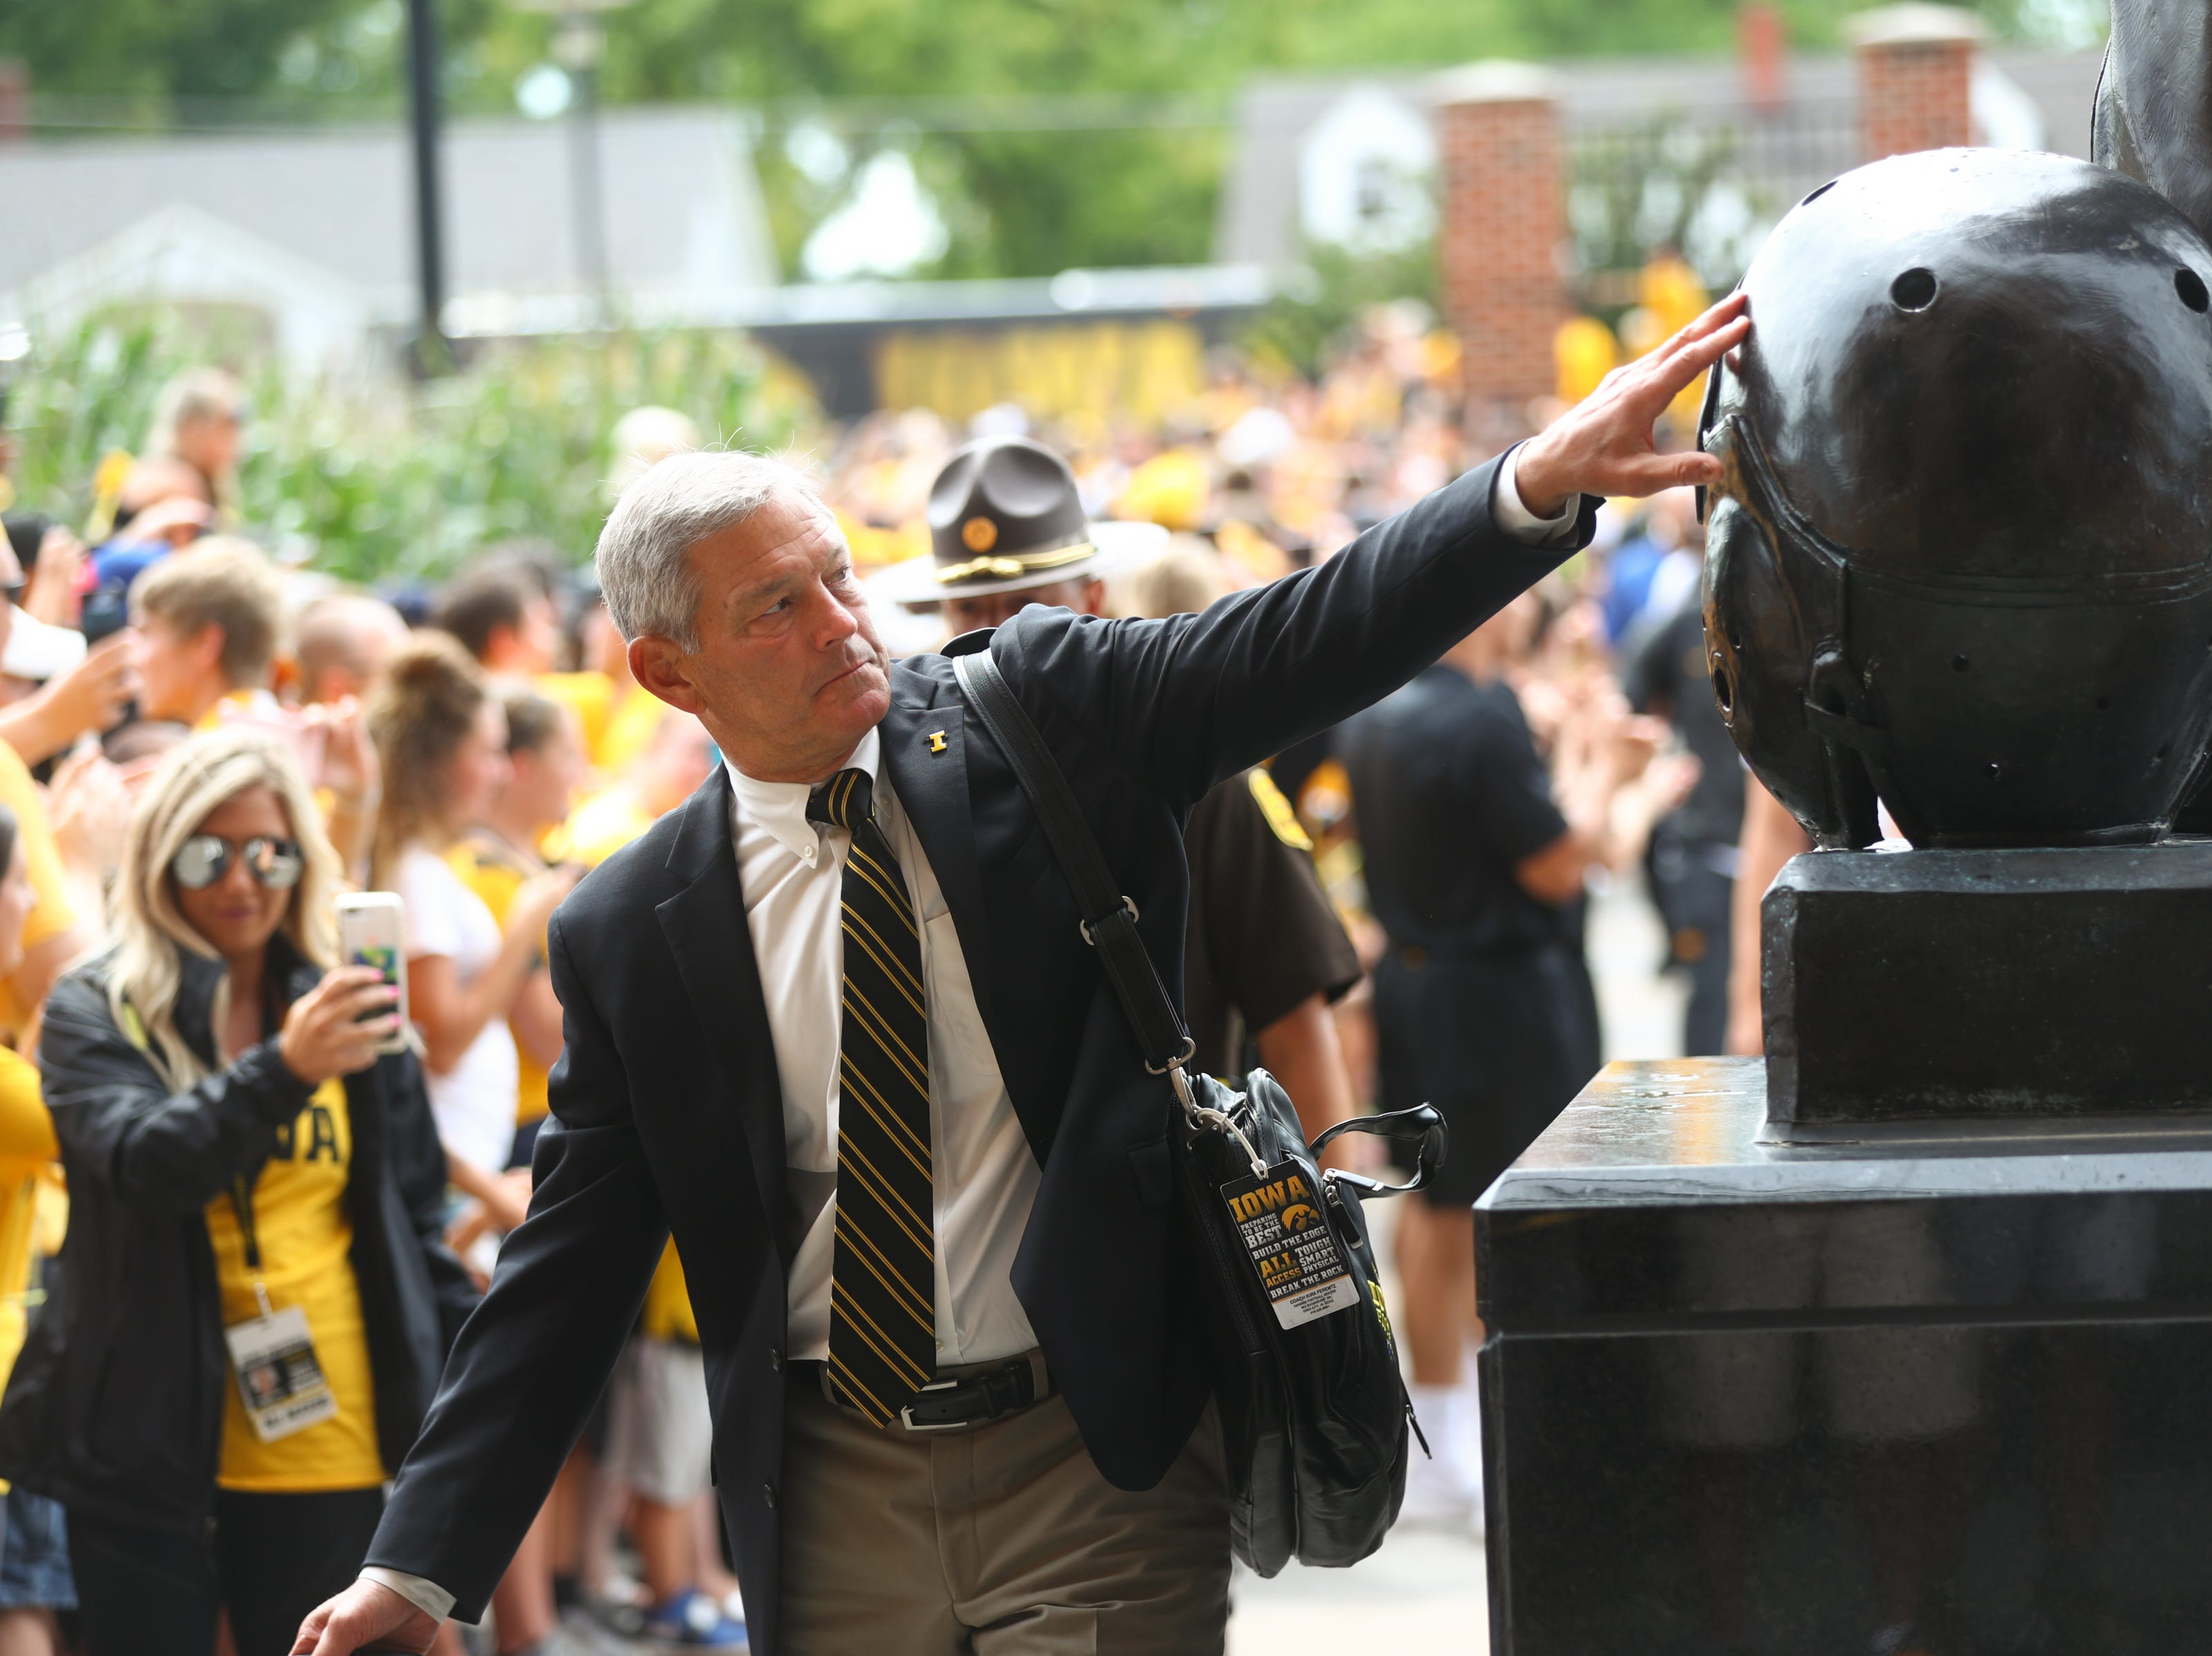 Iowa head coach Kirk Ferentz enters Kinnick Stadium before the Hawkeyes' game against Northern Illinois on Satuday, Sept. 1, 2018.